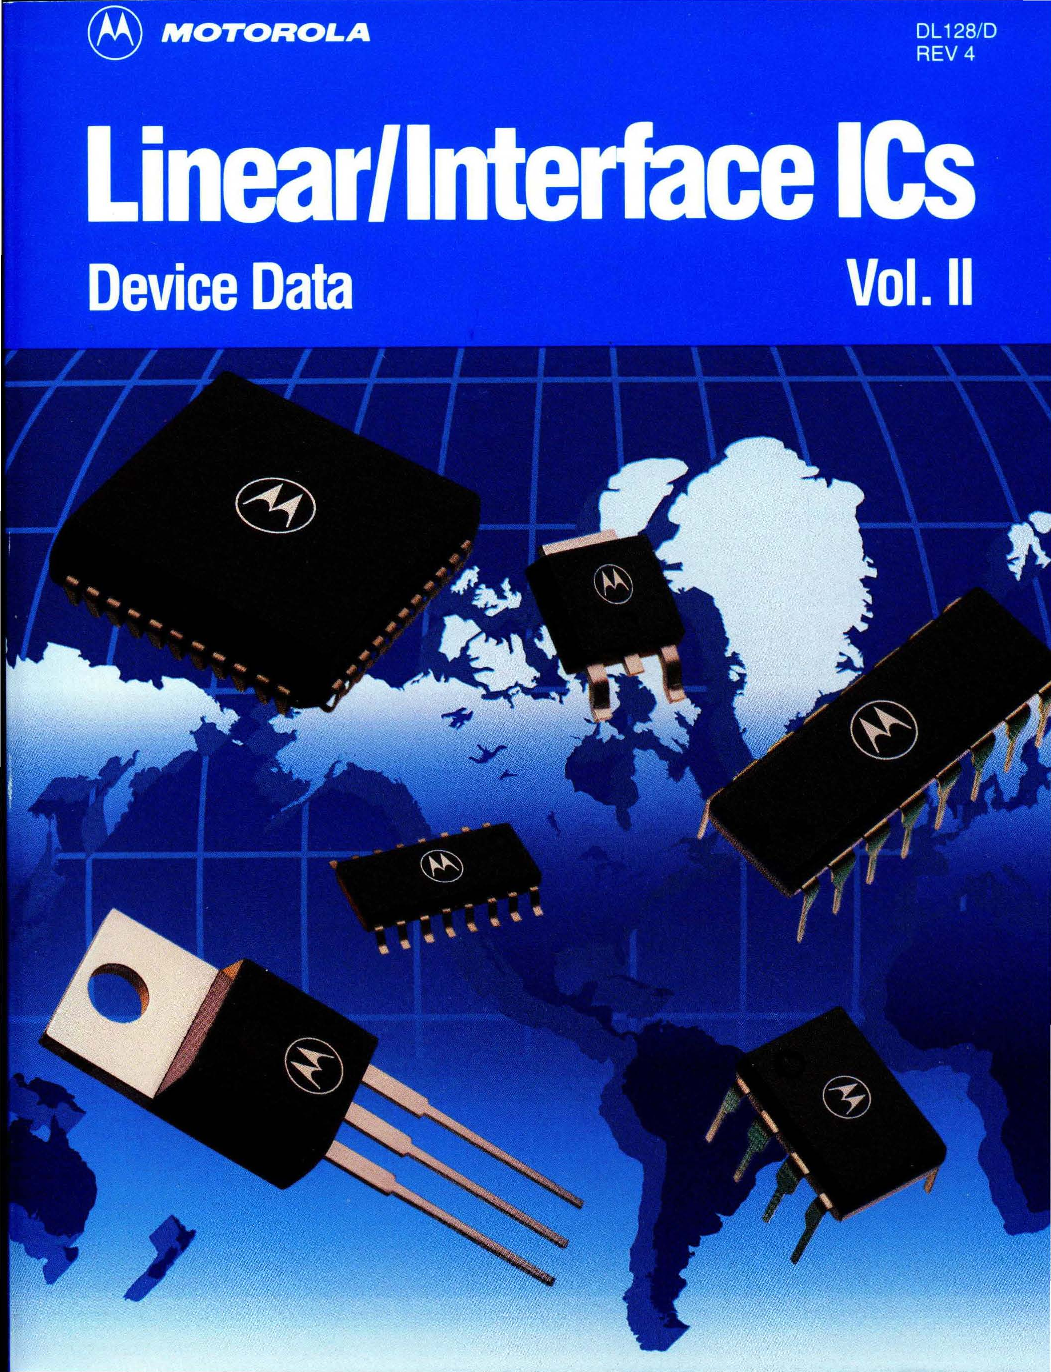 1993 Motorola Linear Interface Ics Vol 2 Led Circuitslightech Driversled Electronic Driverled Circuit